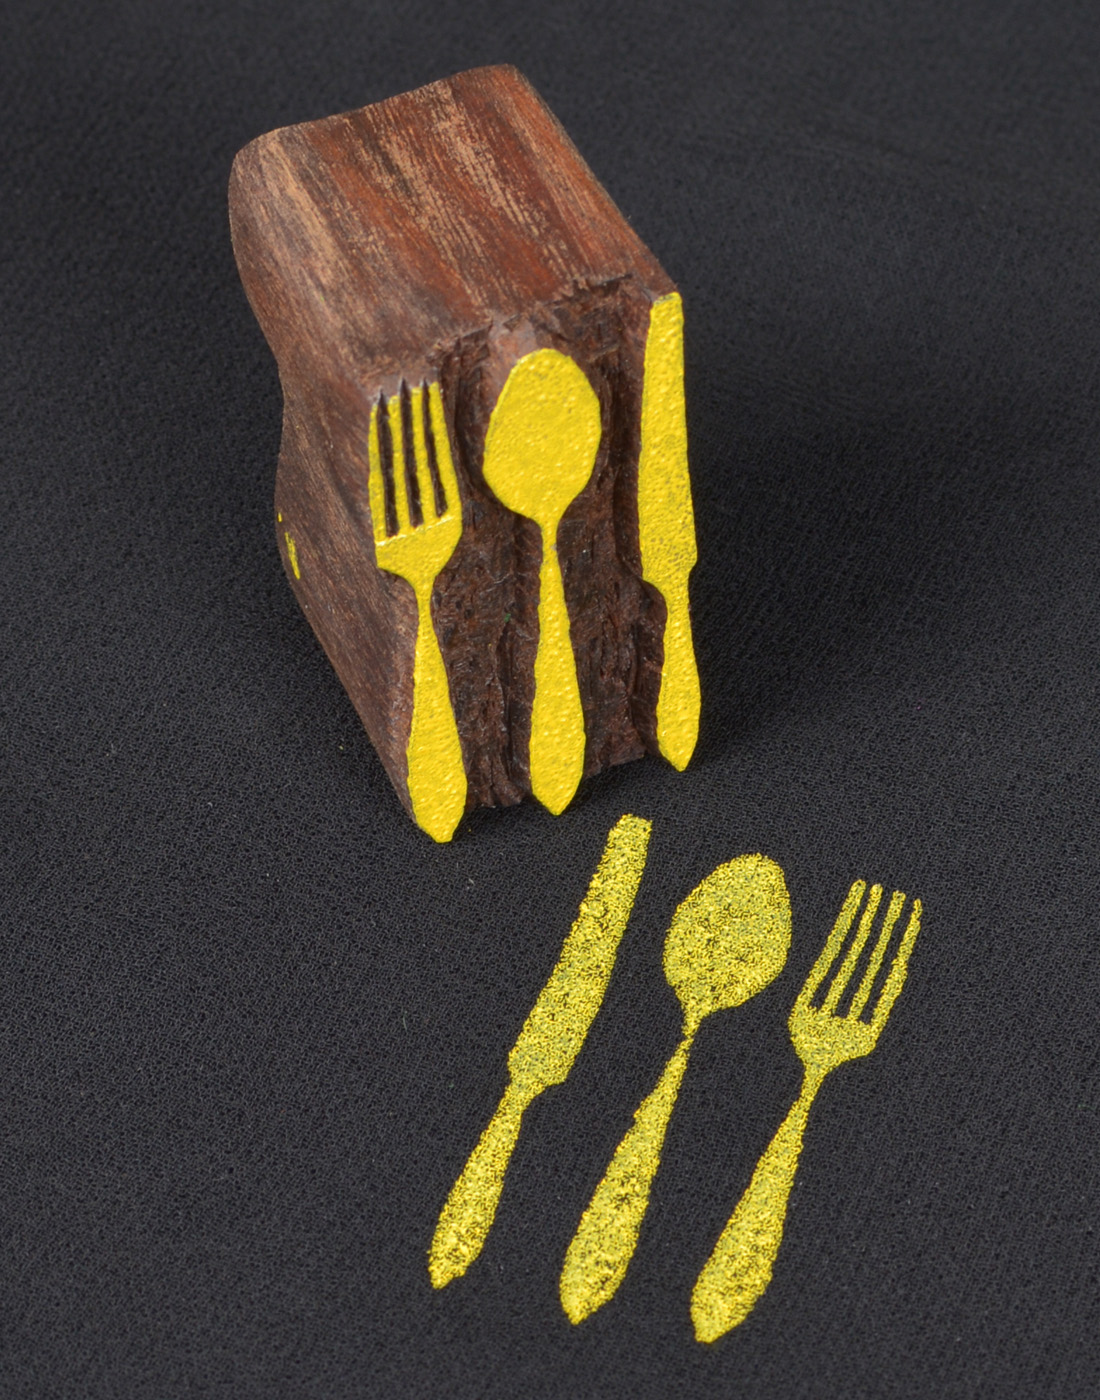 Spoon And Fork Wooden Printing Stamp